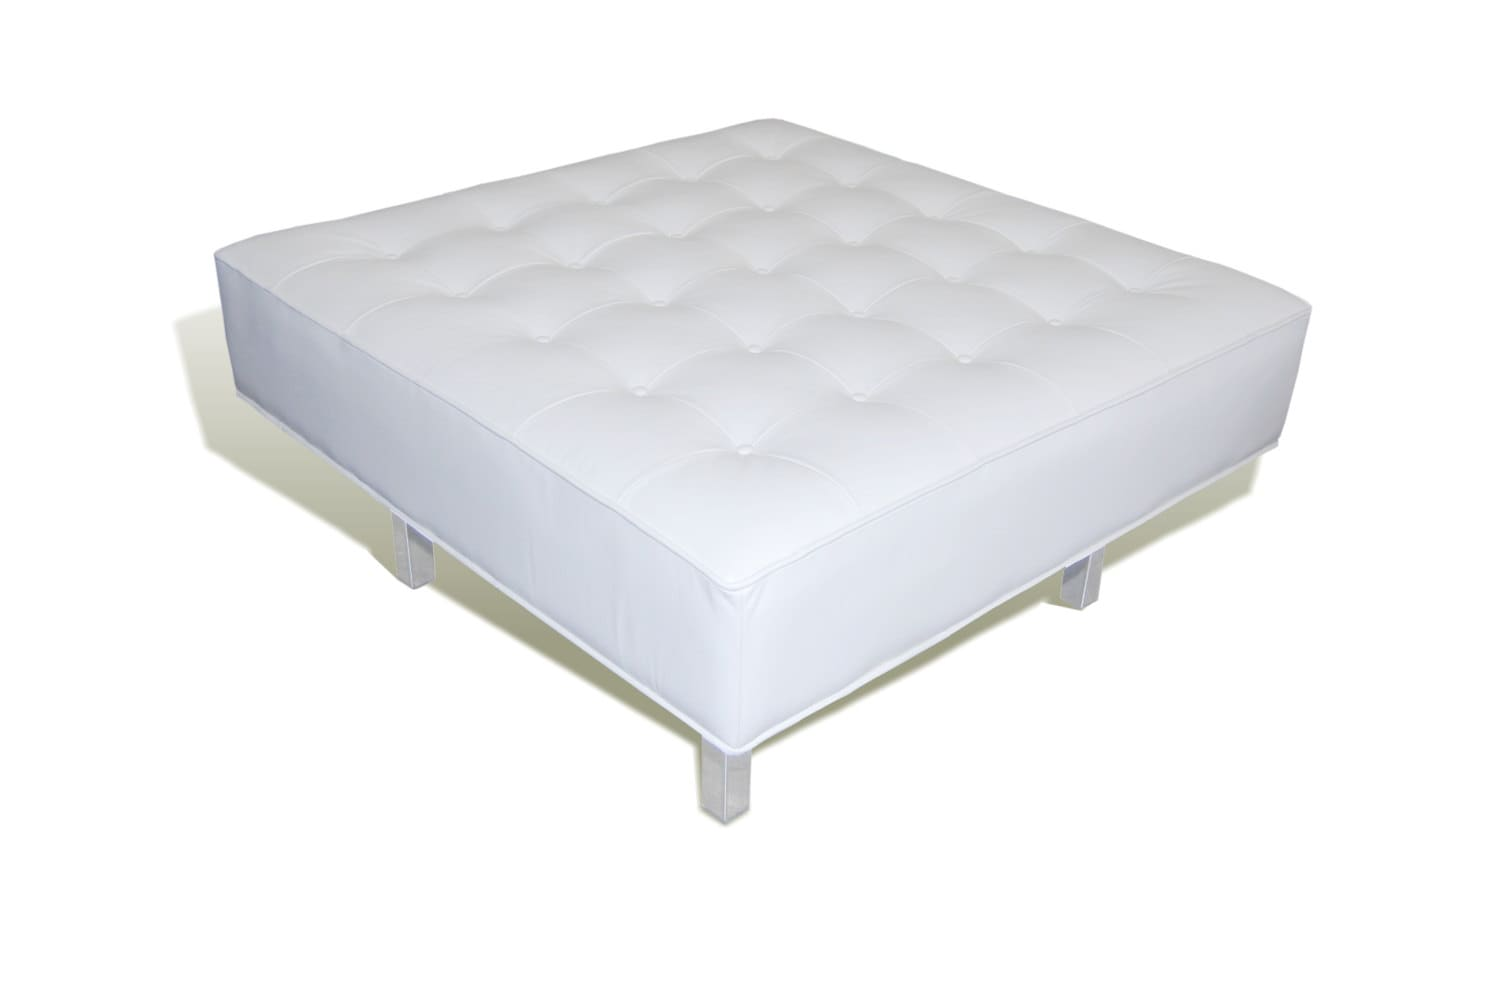 Contemporary Modern White Genuine Leather Tufted Bench Ottoman With Chrome Legs